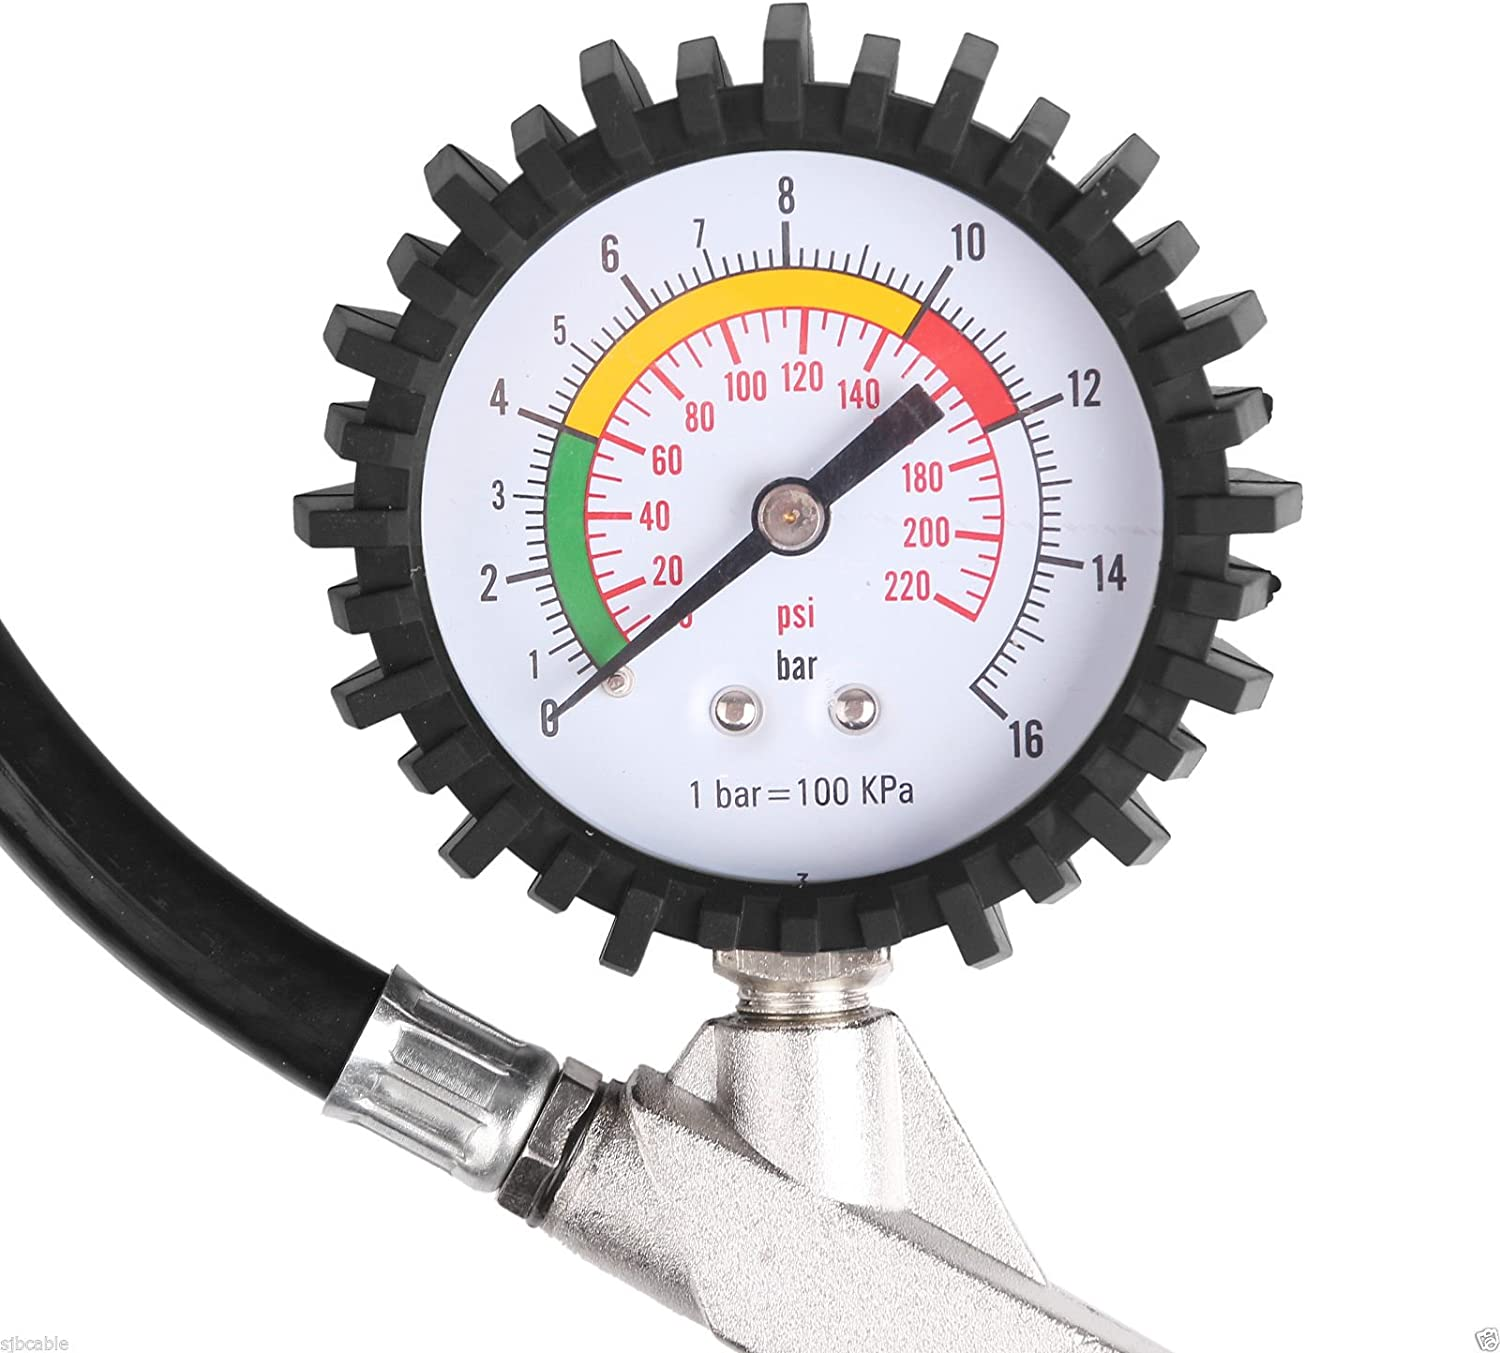 BALLSHOP 220PSI Car Tyre Inflator with Air Pressure Gauge for Heavy Duty Car Motorcycle Bicycle